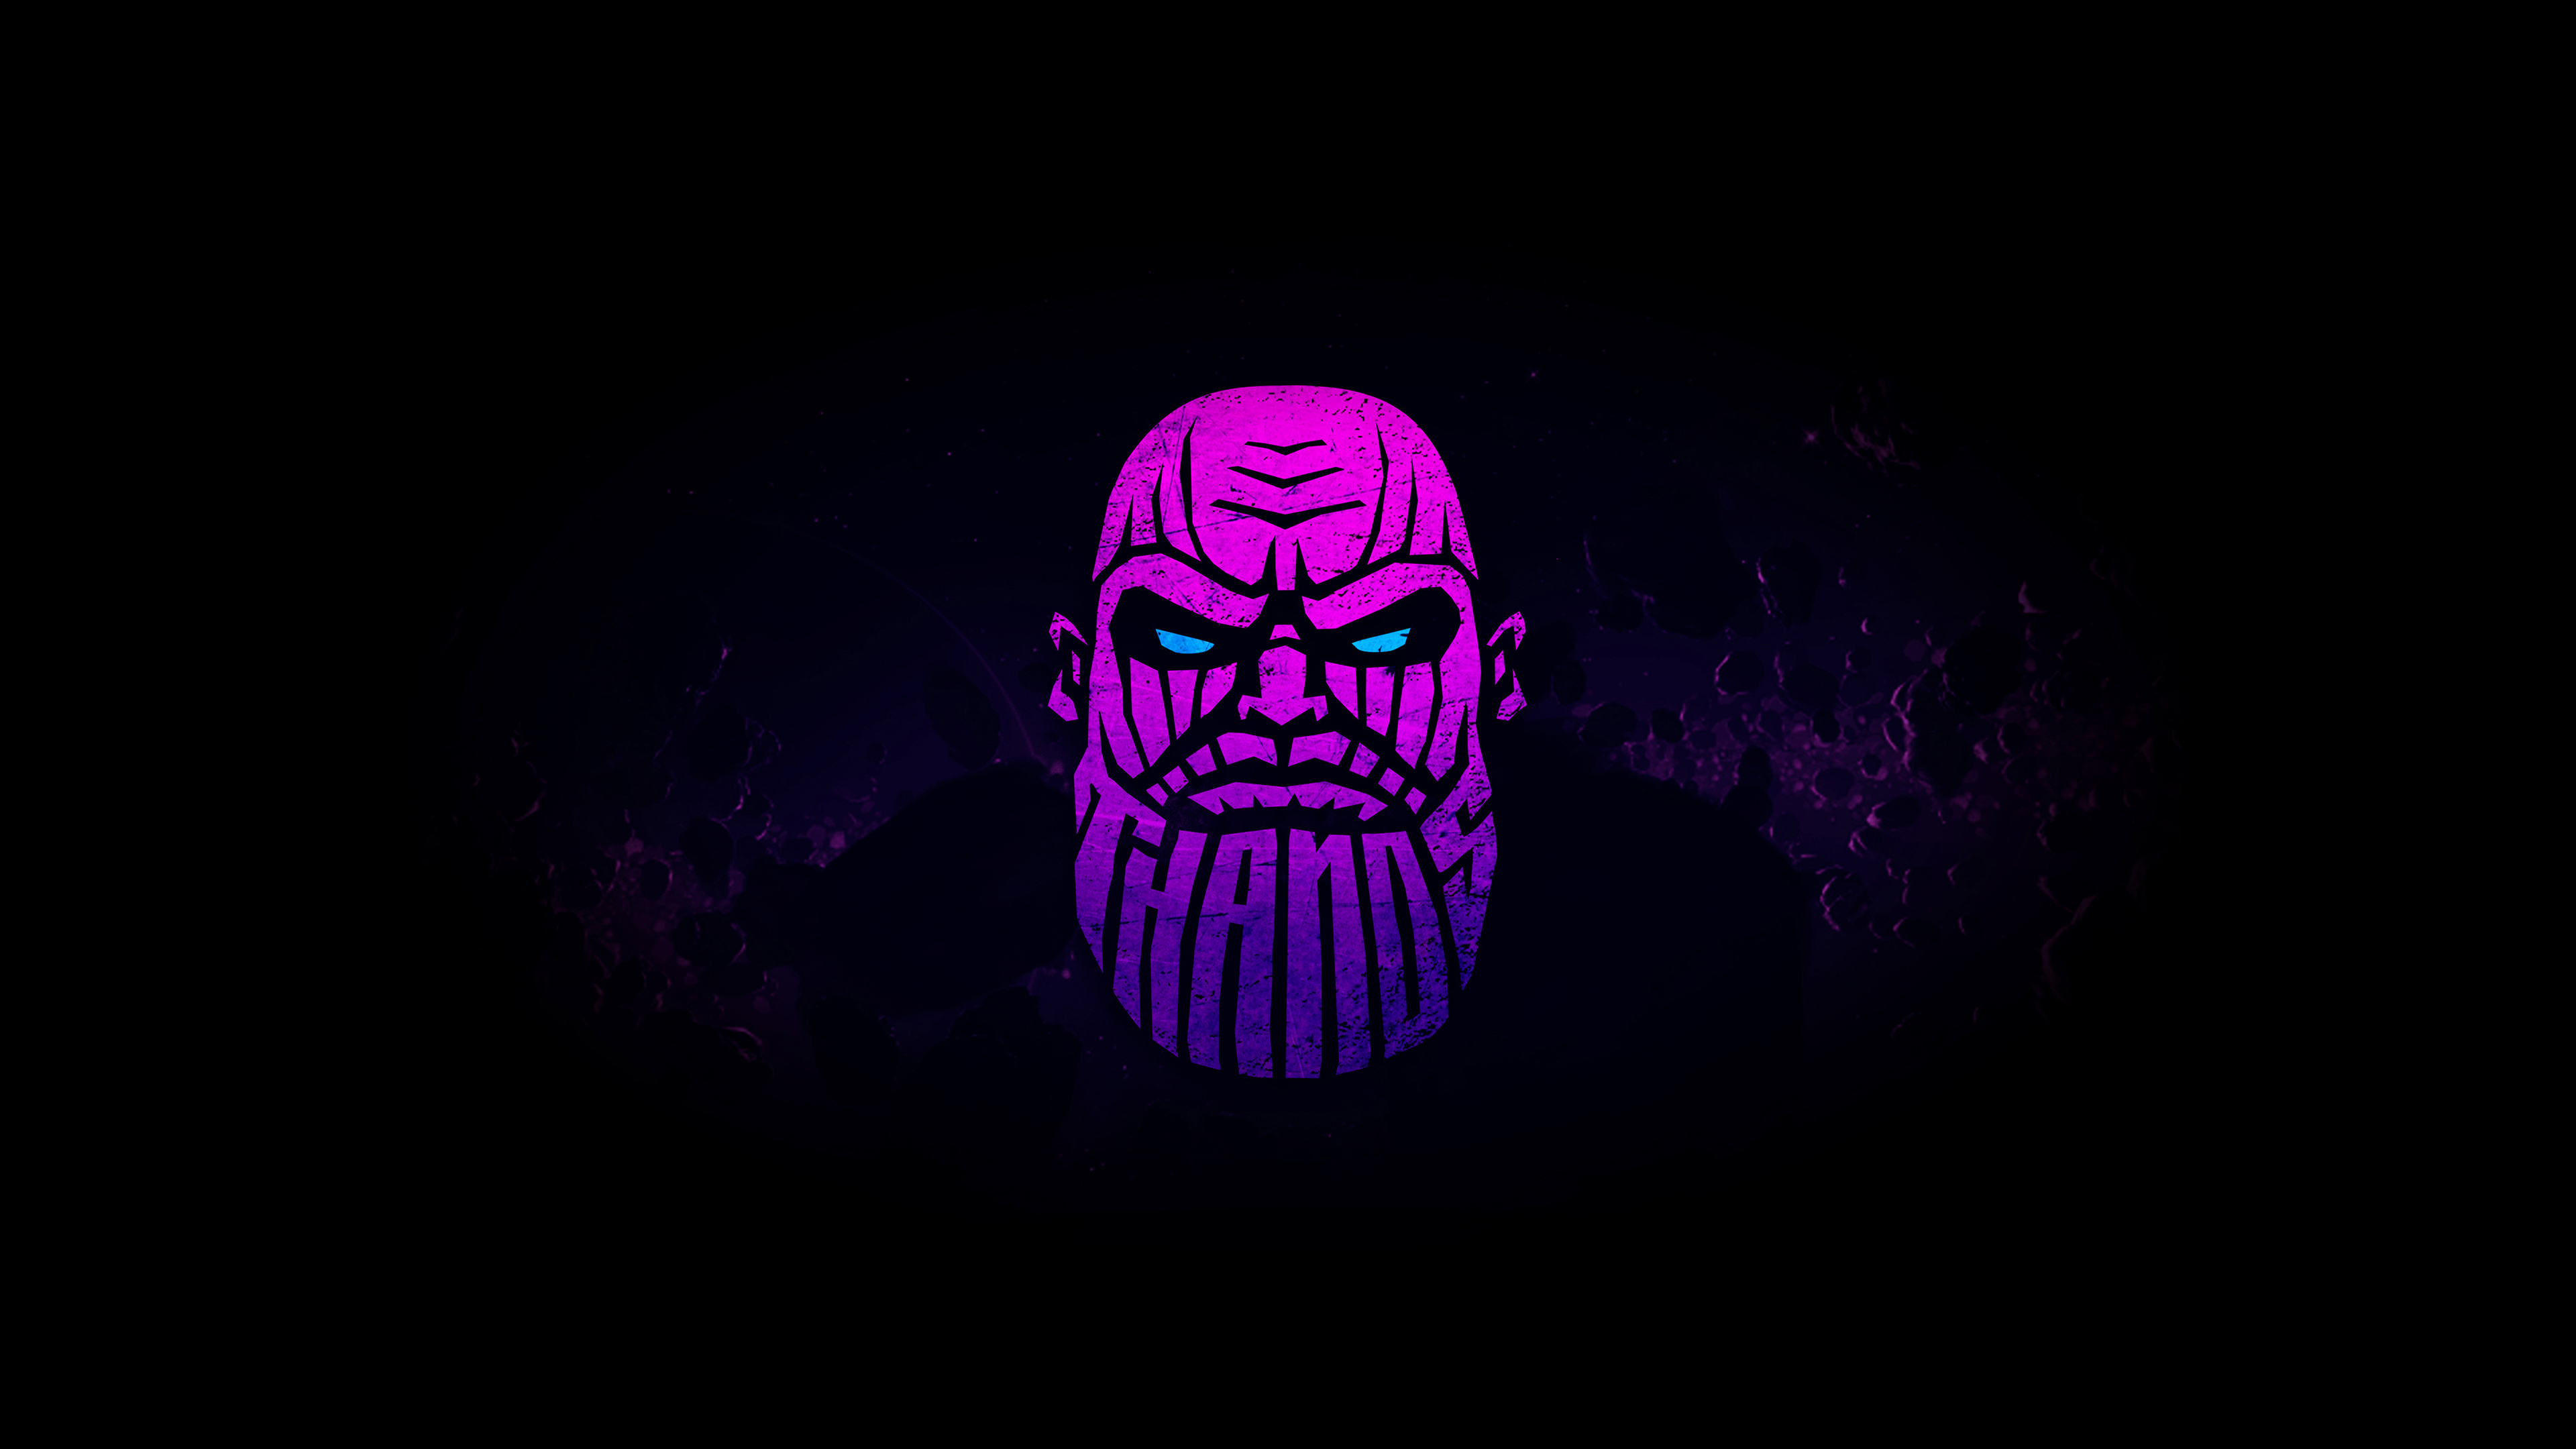 2560x1080 Thanos Artistic 2560x1080 Resolution Wallpaper Hd Artist 4k Wallpapers Images Photos And Background